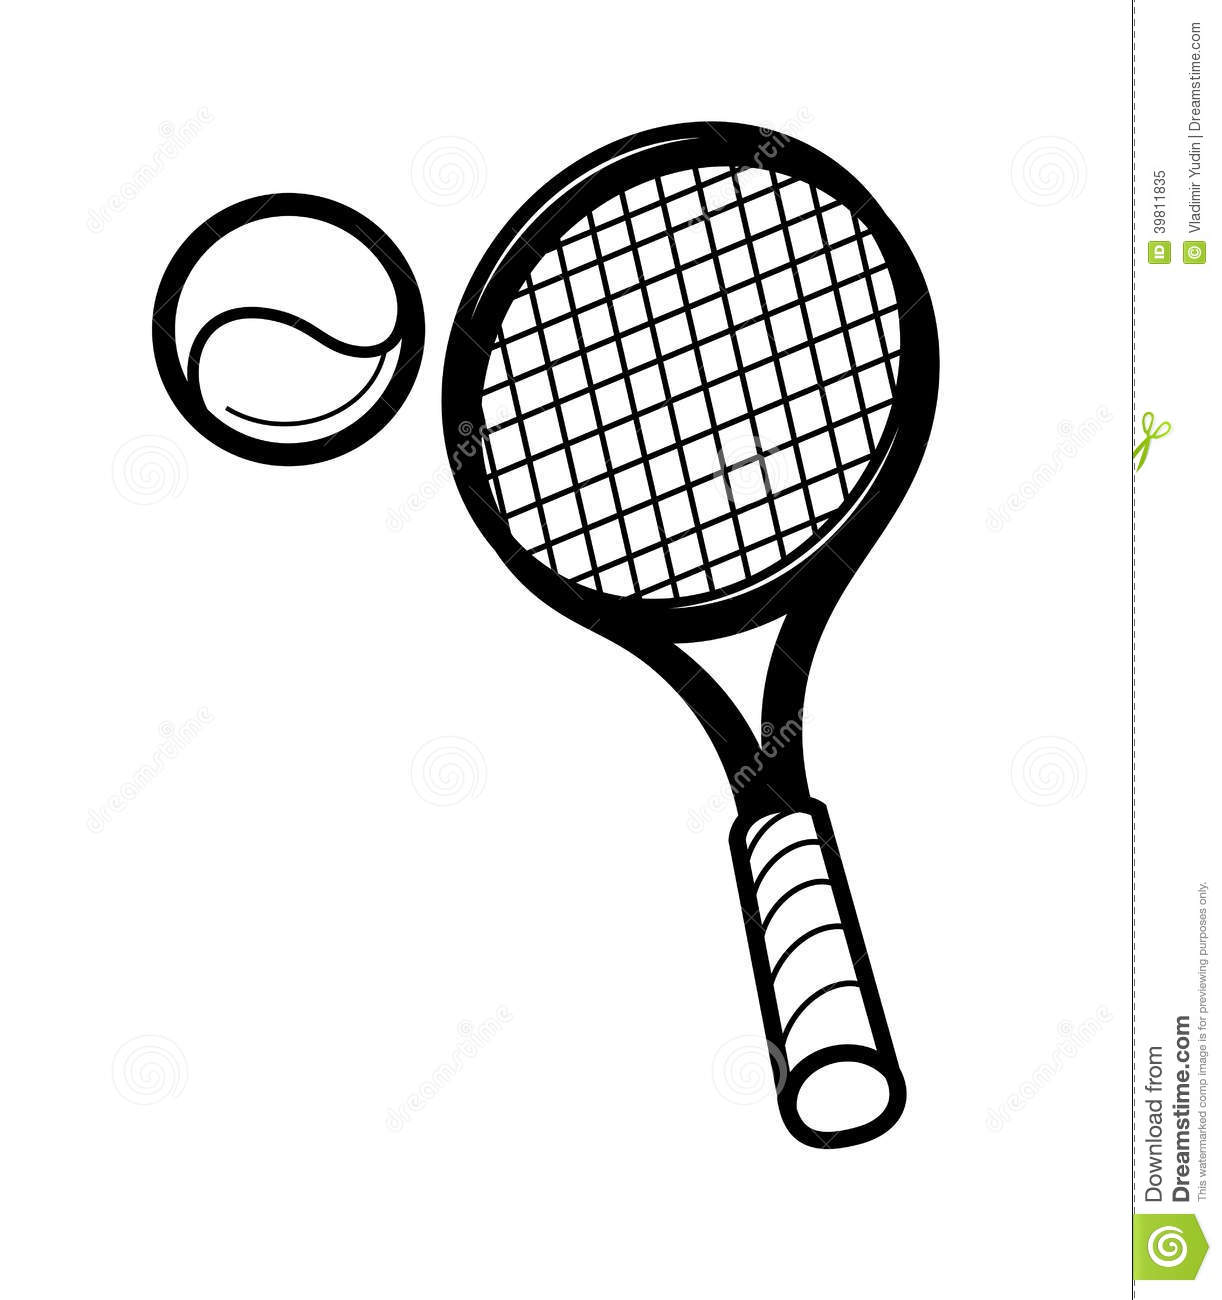 Tennis Racket Clip Art Black and White